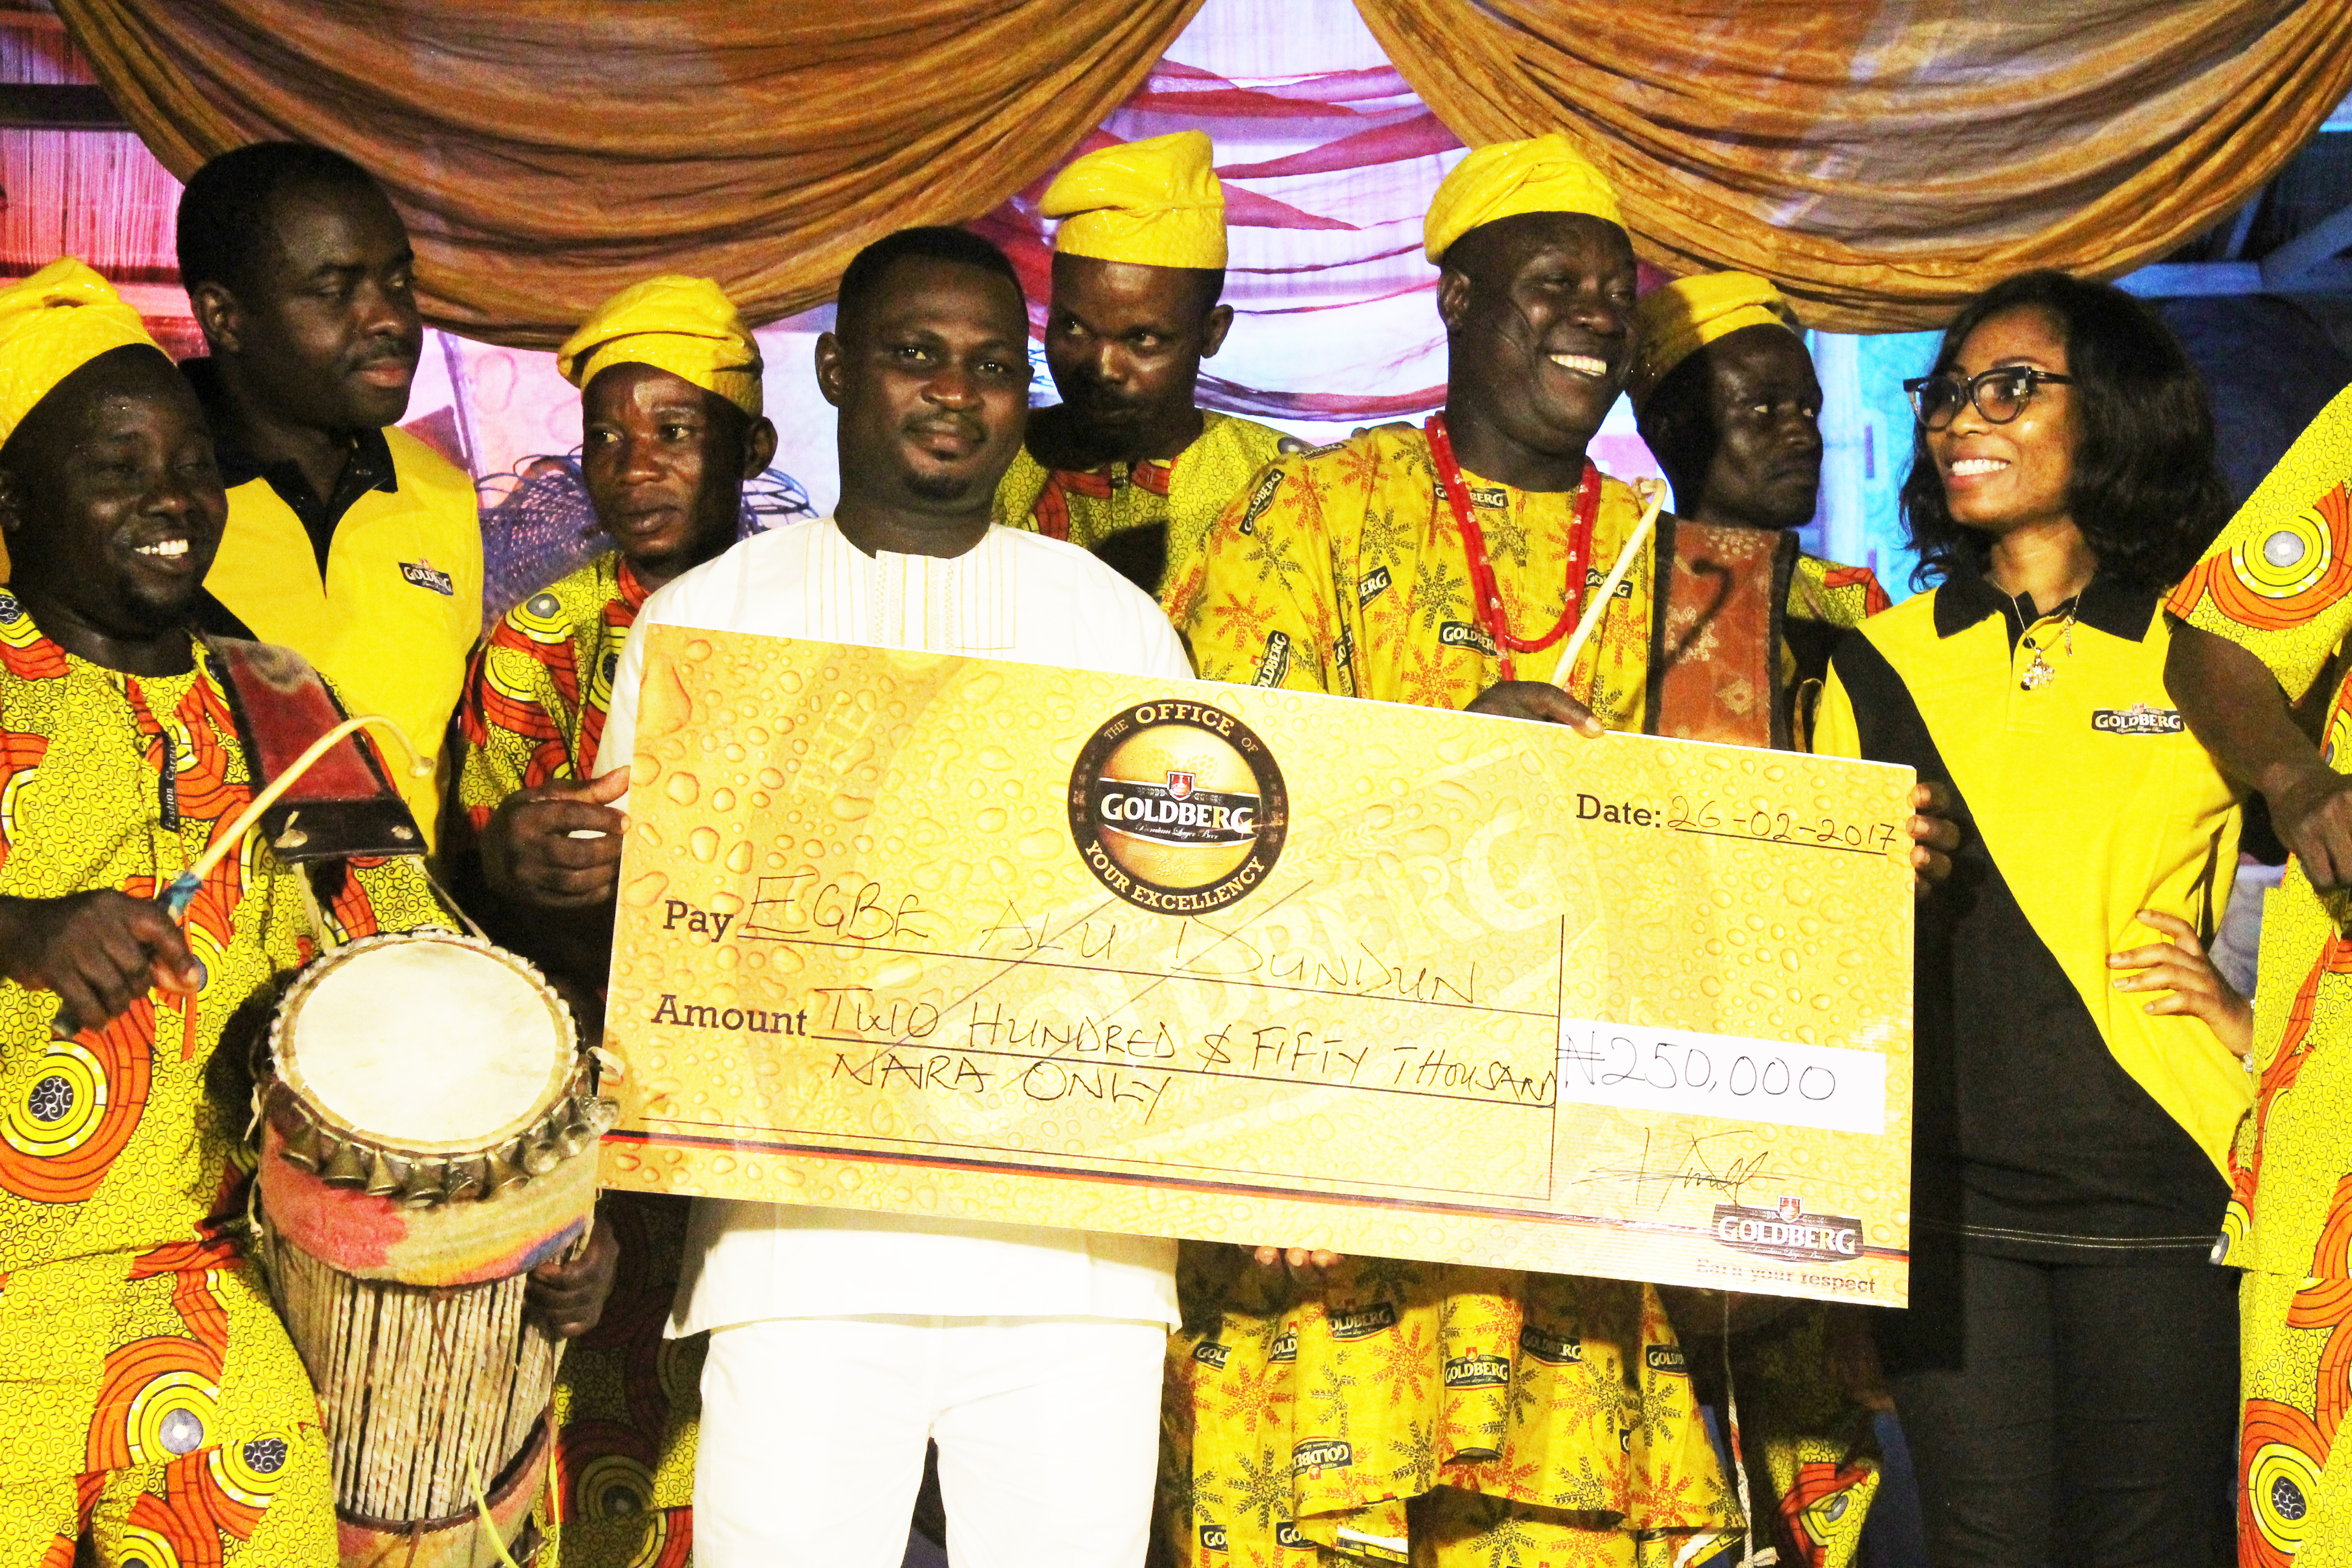 Akinwande Kunle , Area Sales Manager, Nigerian Breweries Plc, Ilorin (2nd from left) presenting a cheque of Two Hundred and Fifty Thousand Naira to the winning band, Egbe Alu Dundun at the Goldberg Excellency Tour in Ilorin on Sunday. With them is Ayotola Owolabi (first from right), Assistant Trade Marketing Manager, Nigerian Breweries Plc.